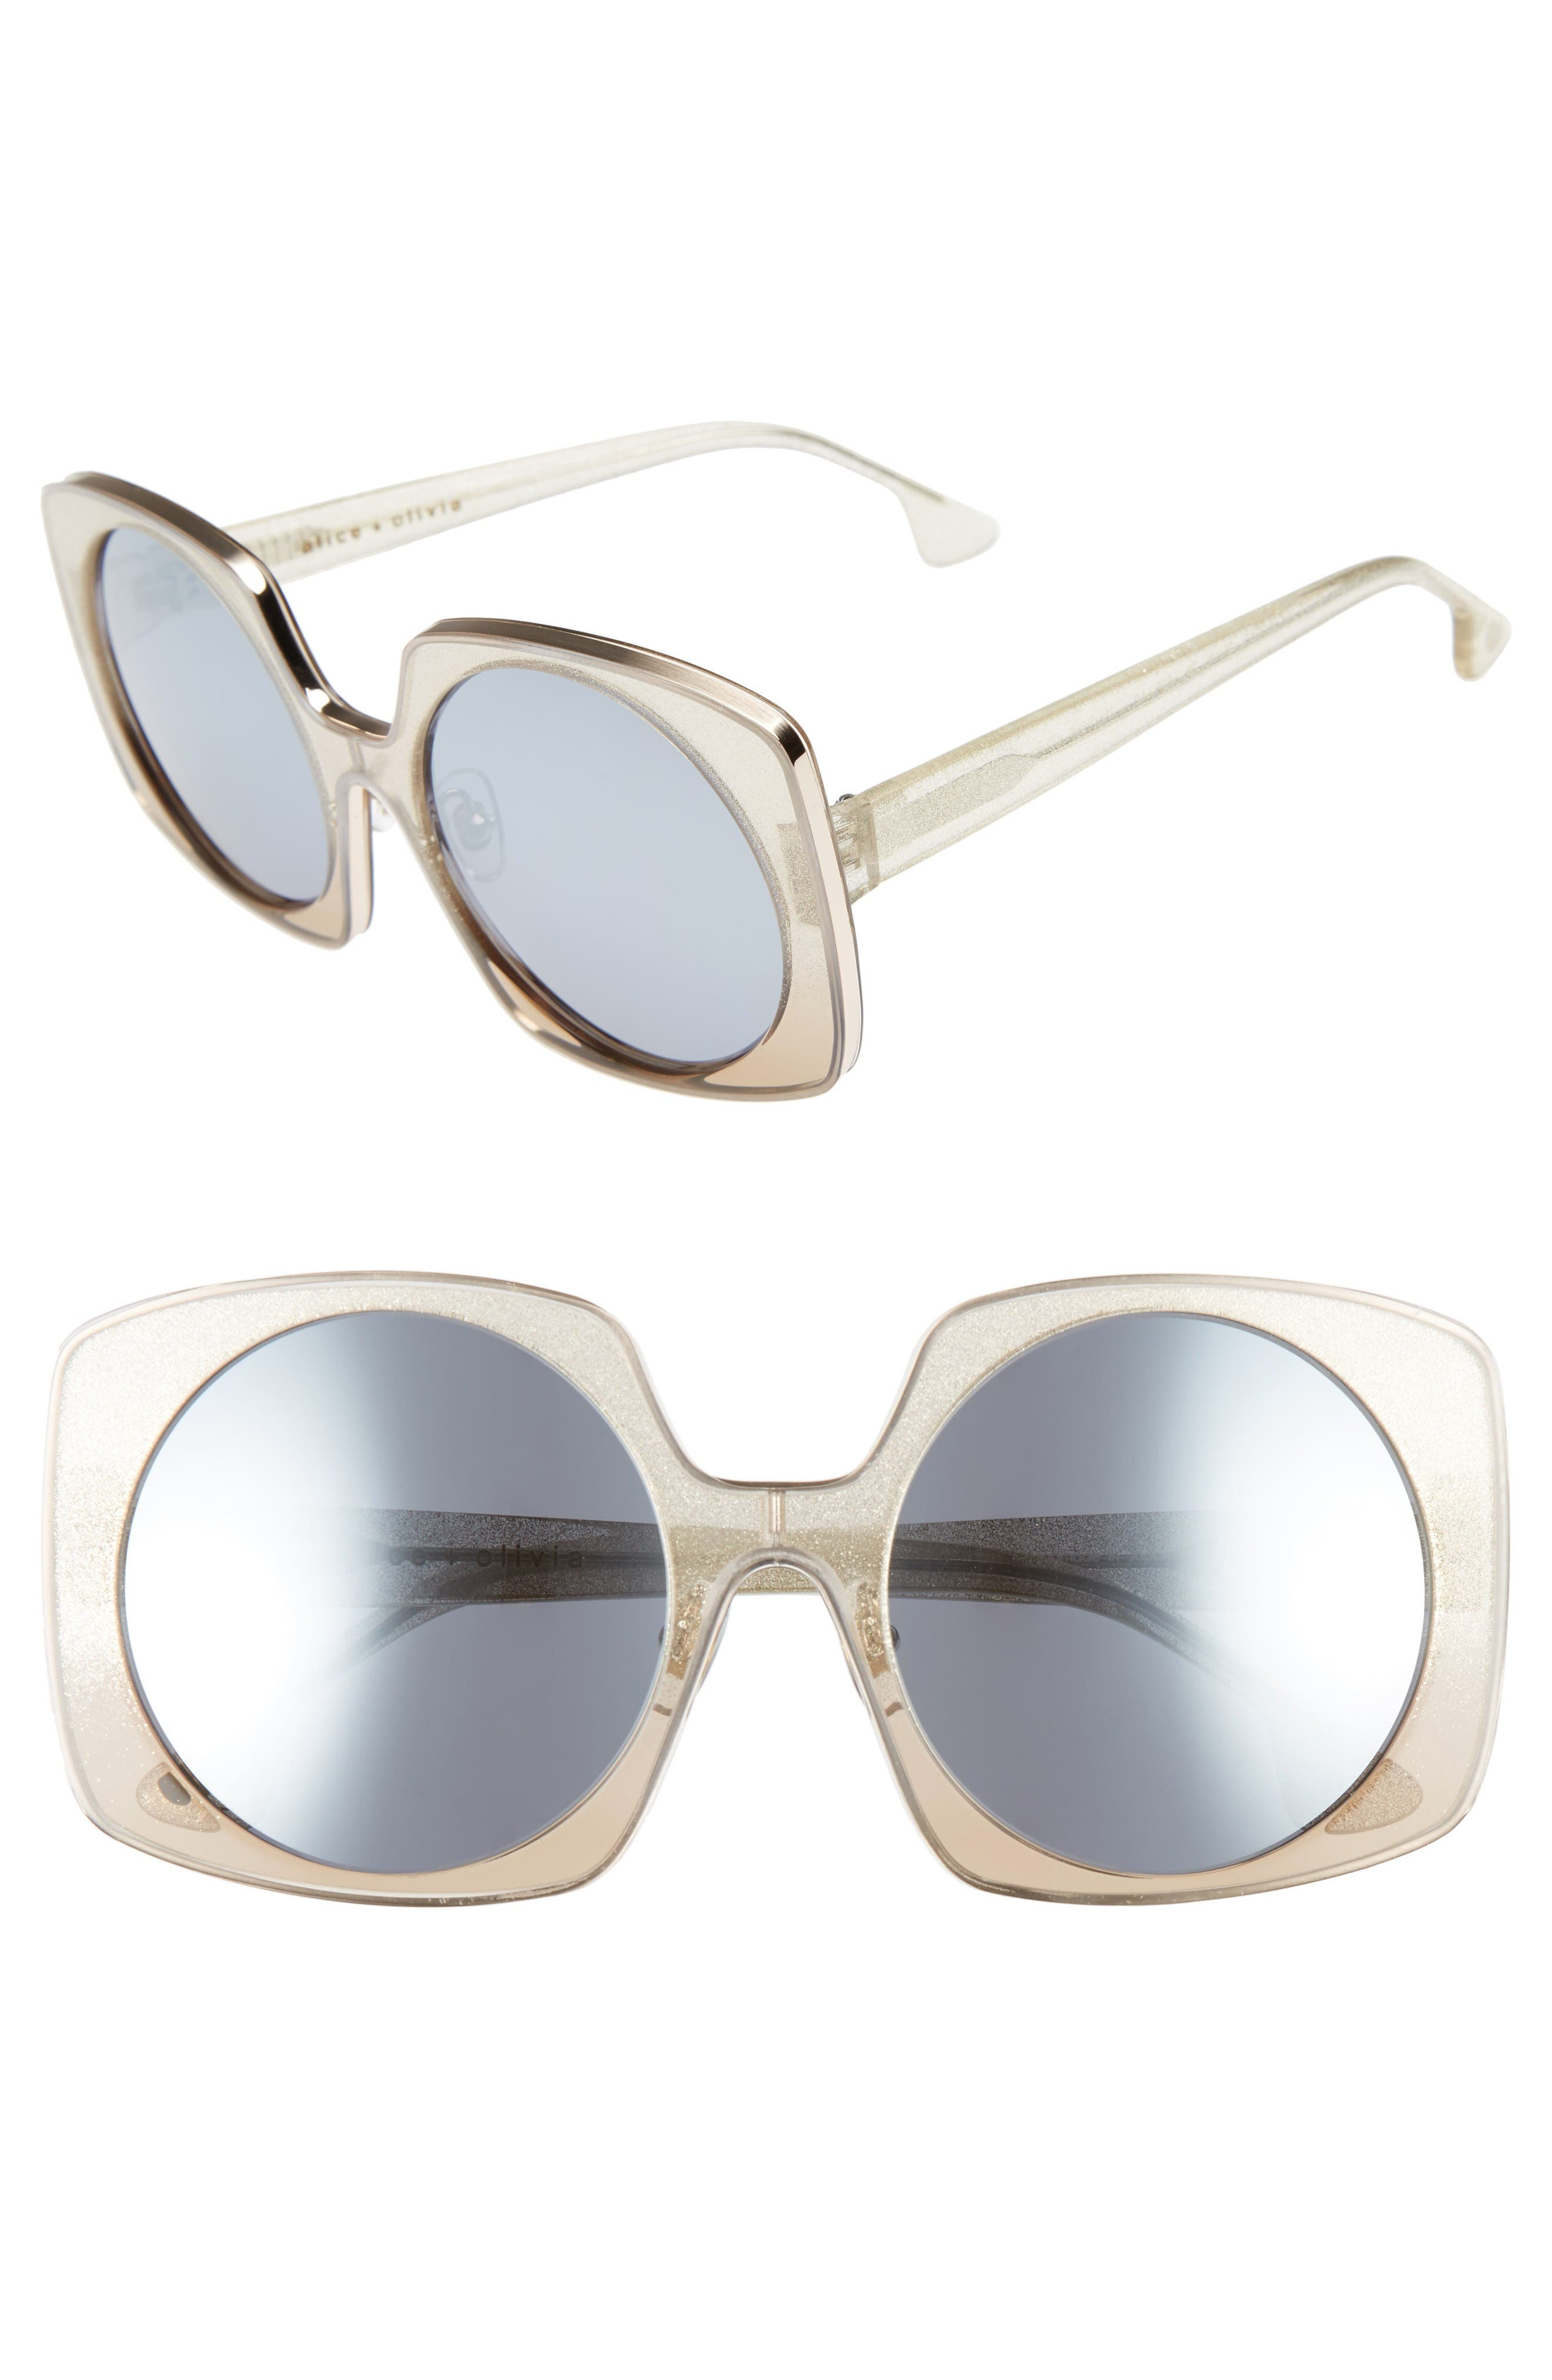 ALICE + OLIVIA Canton 55mm Special Fit Square Sunglasses